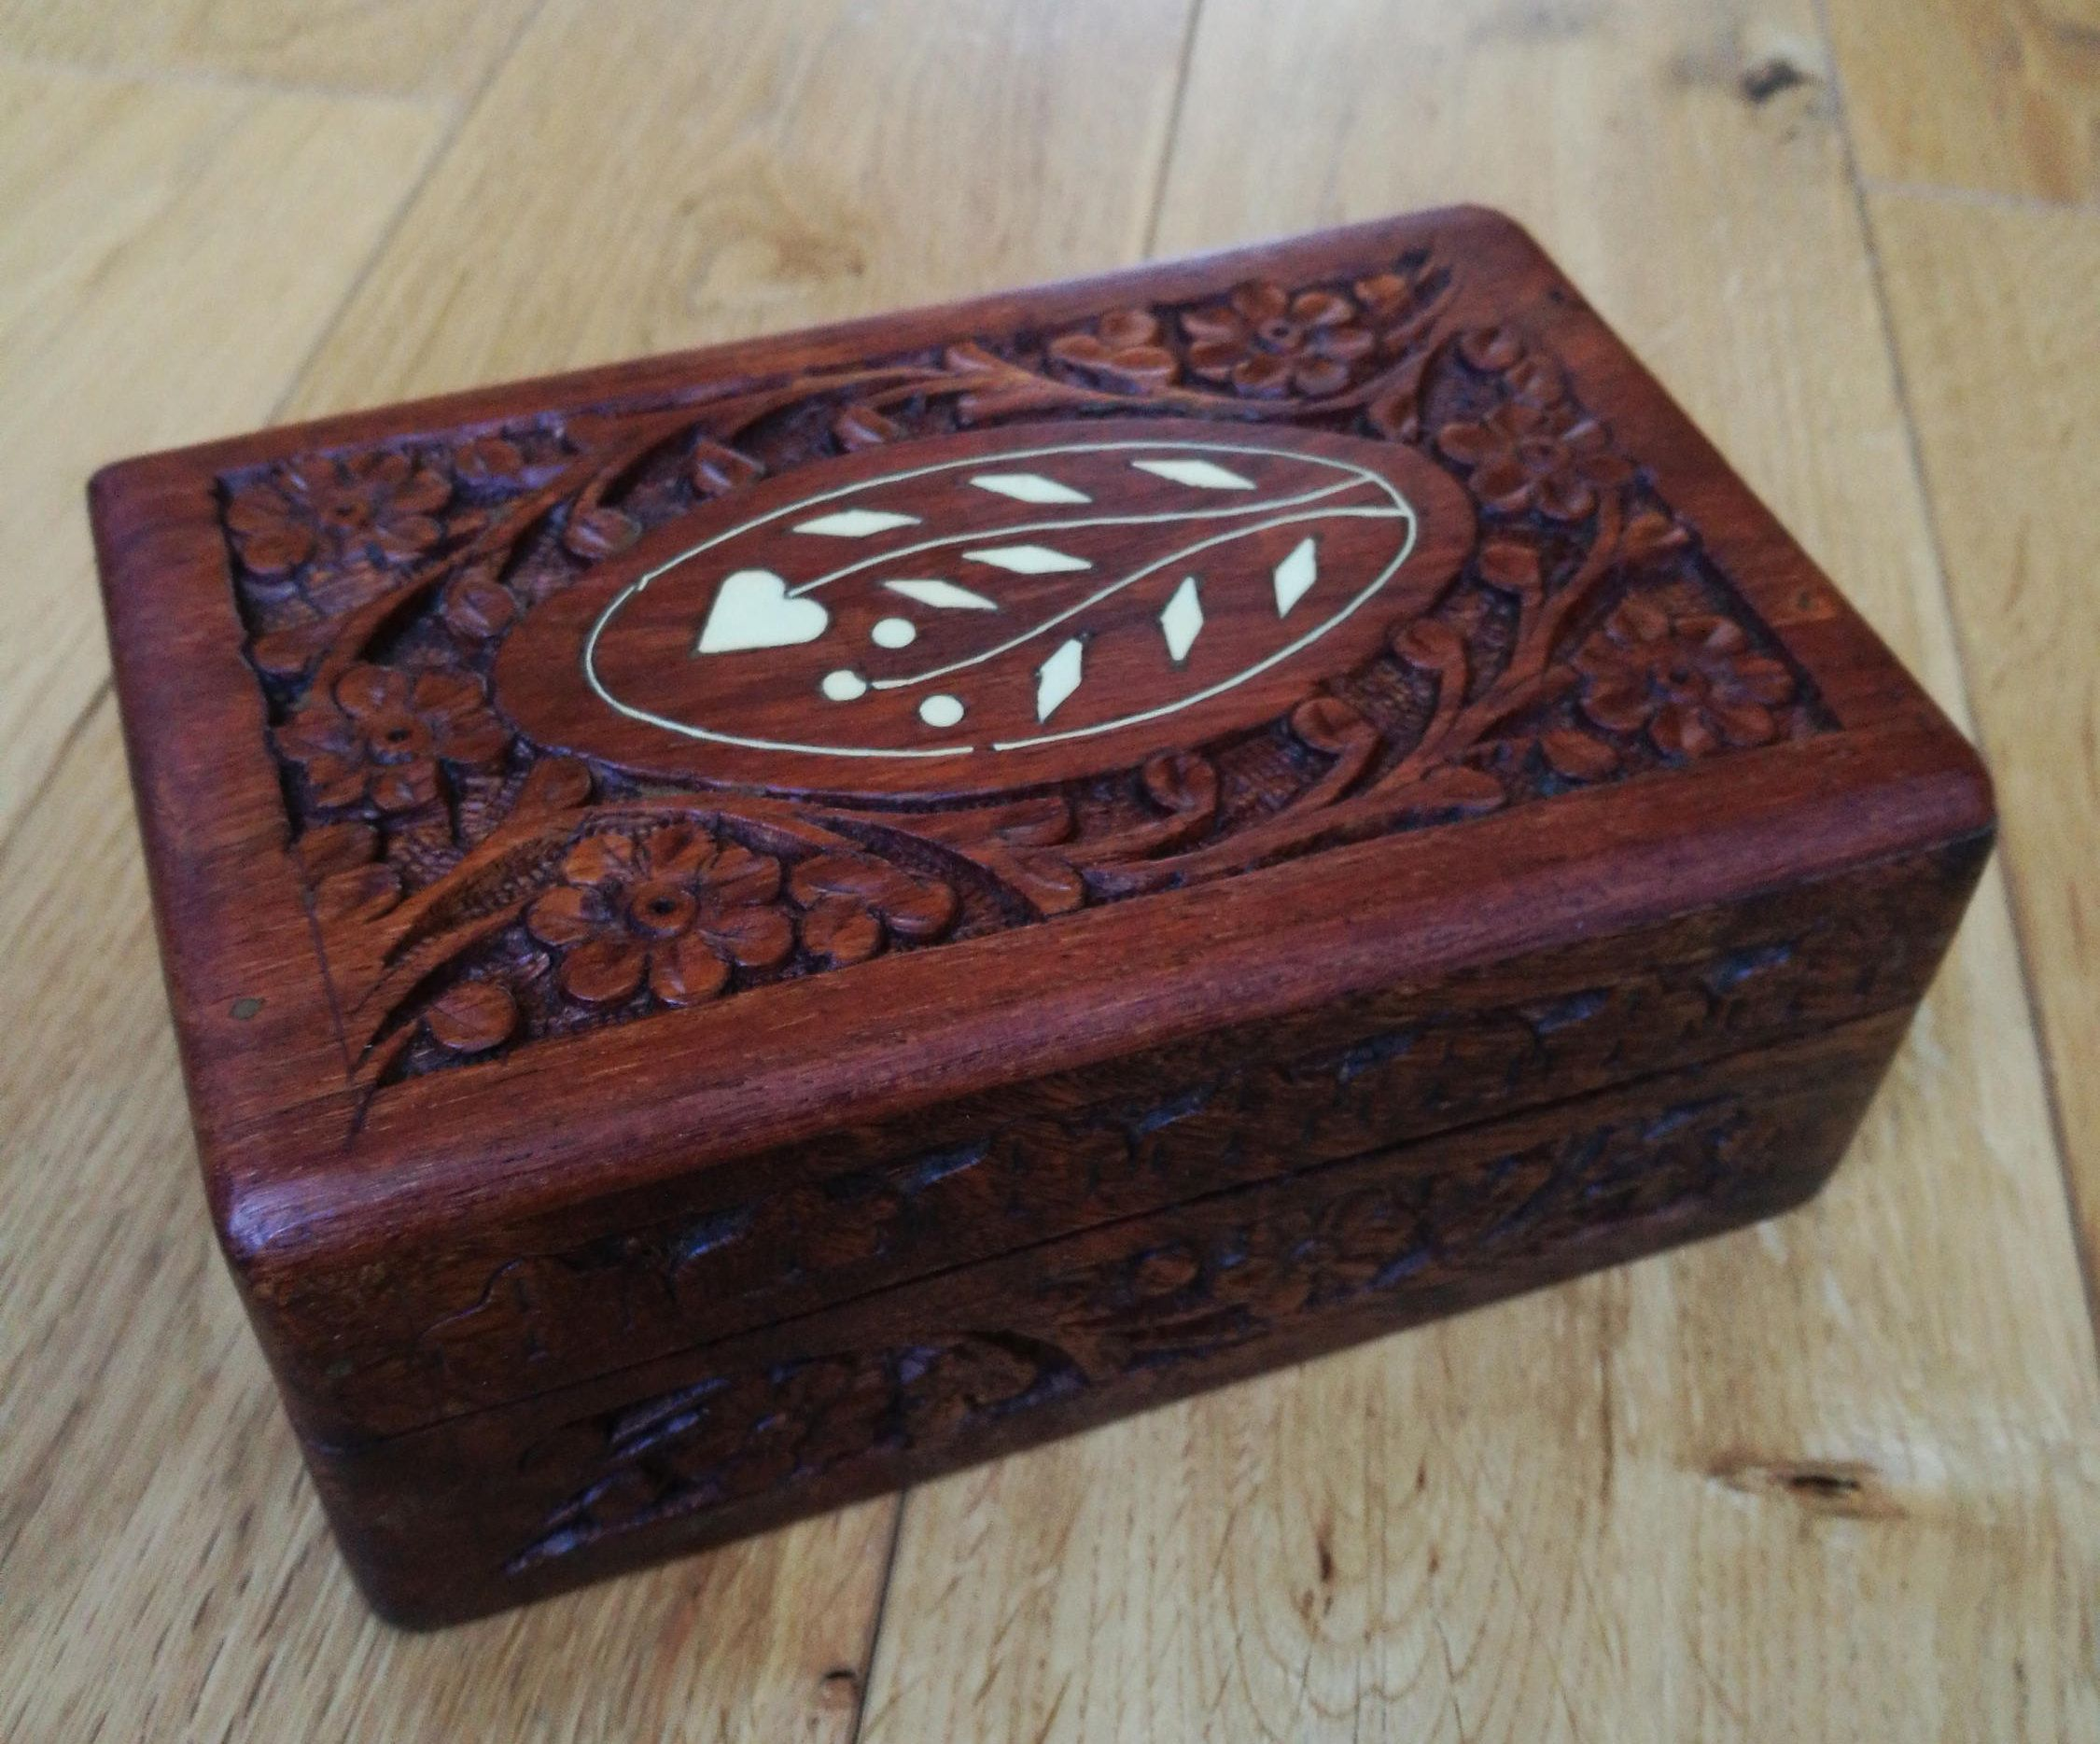 Vintage Hand Carved Wooden Box Indian Box Carved Wooden Indian Jewellery Or Trinket Box Vintage Hand Carved Inlaid Wooden Tarot Box Wooden Boxes Hand Carved Trinket Boxes